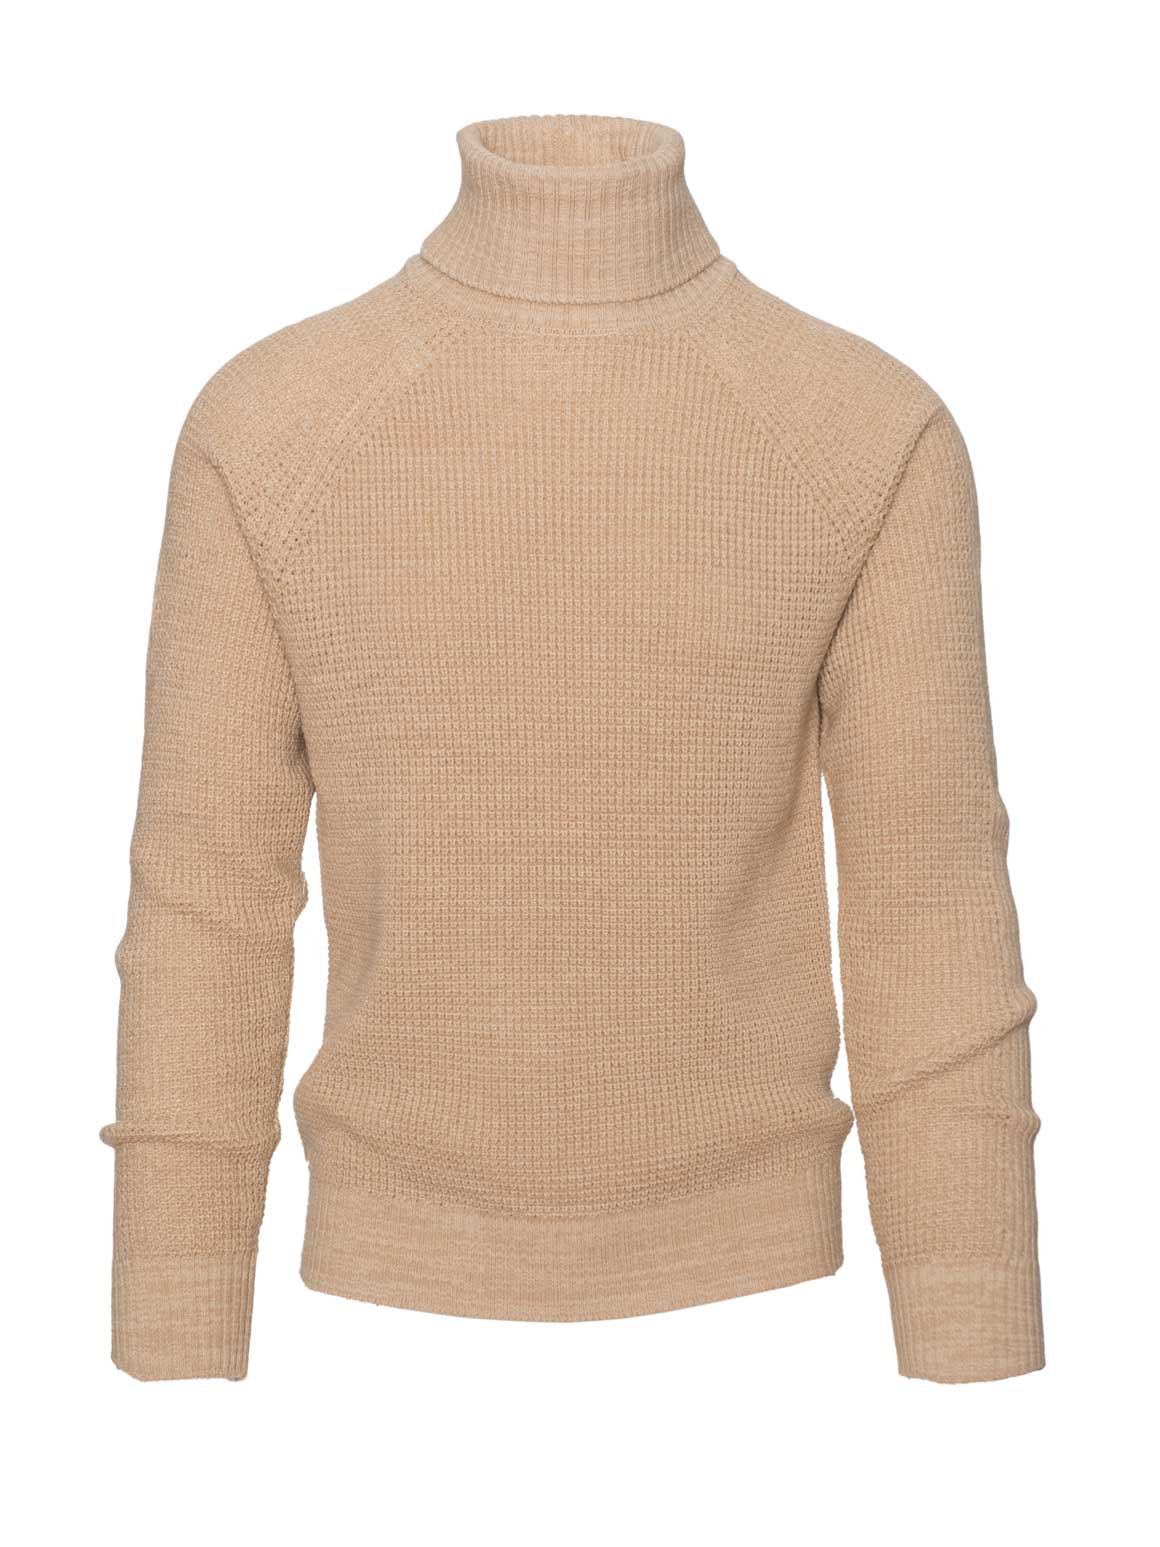 Turtleneck - Camel Marle